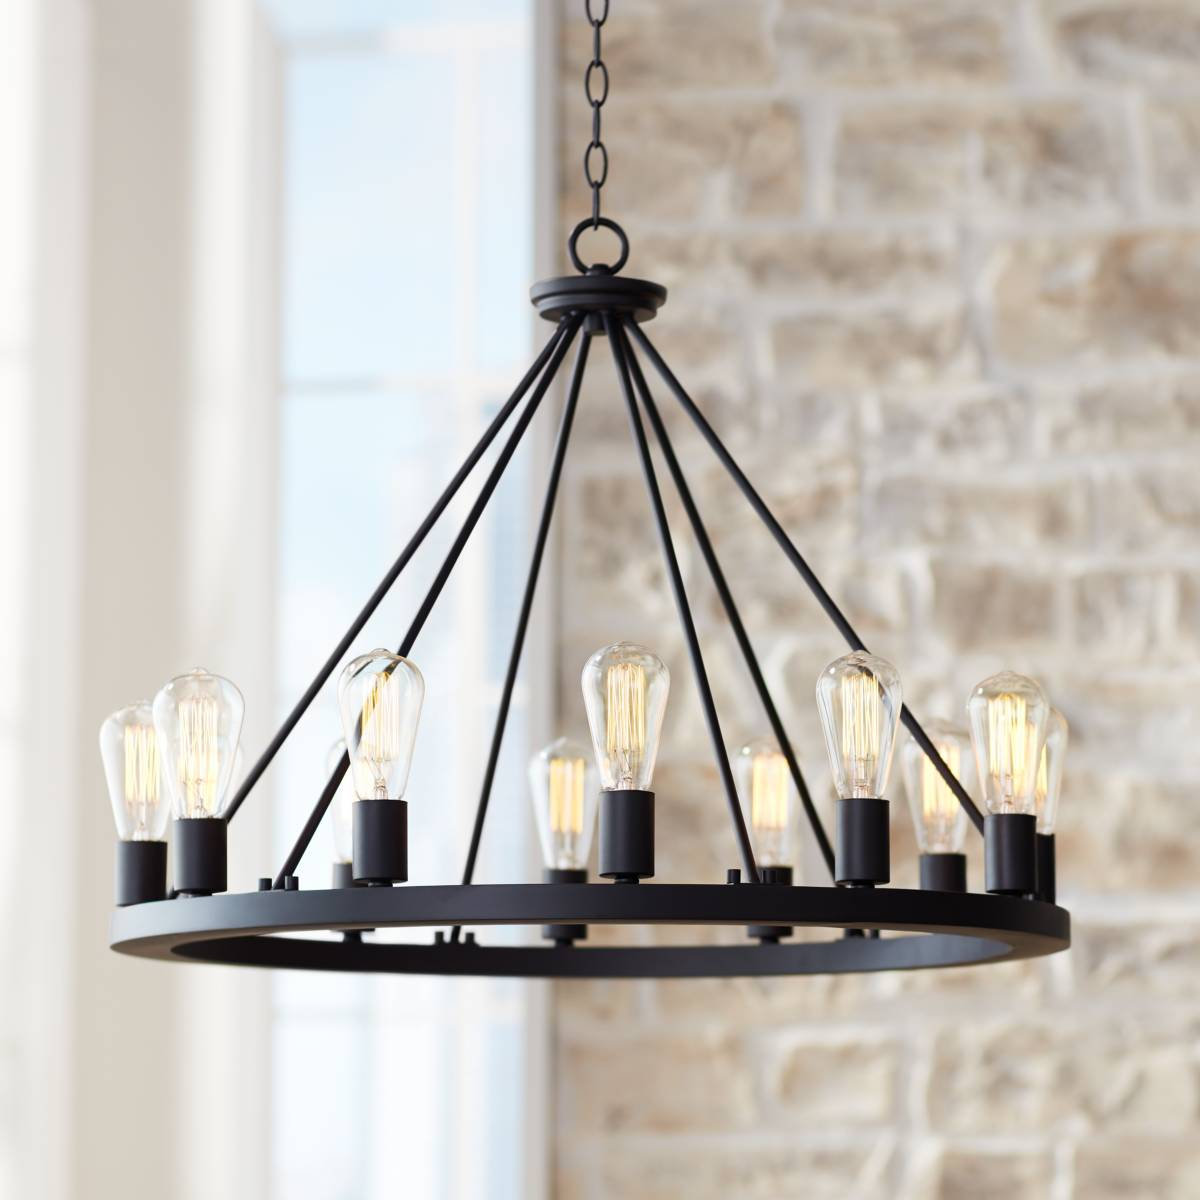 Dining Room Chandeliers - Casual, Formal And More